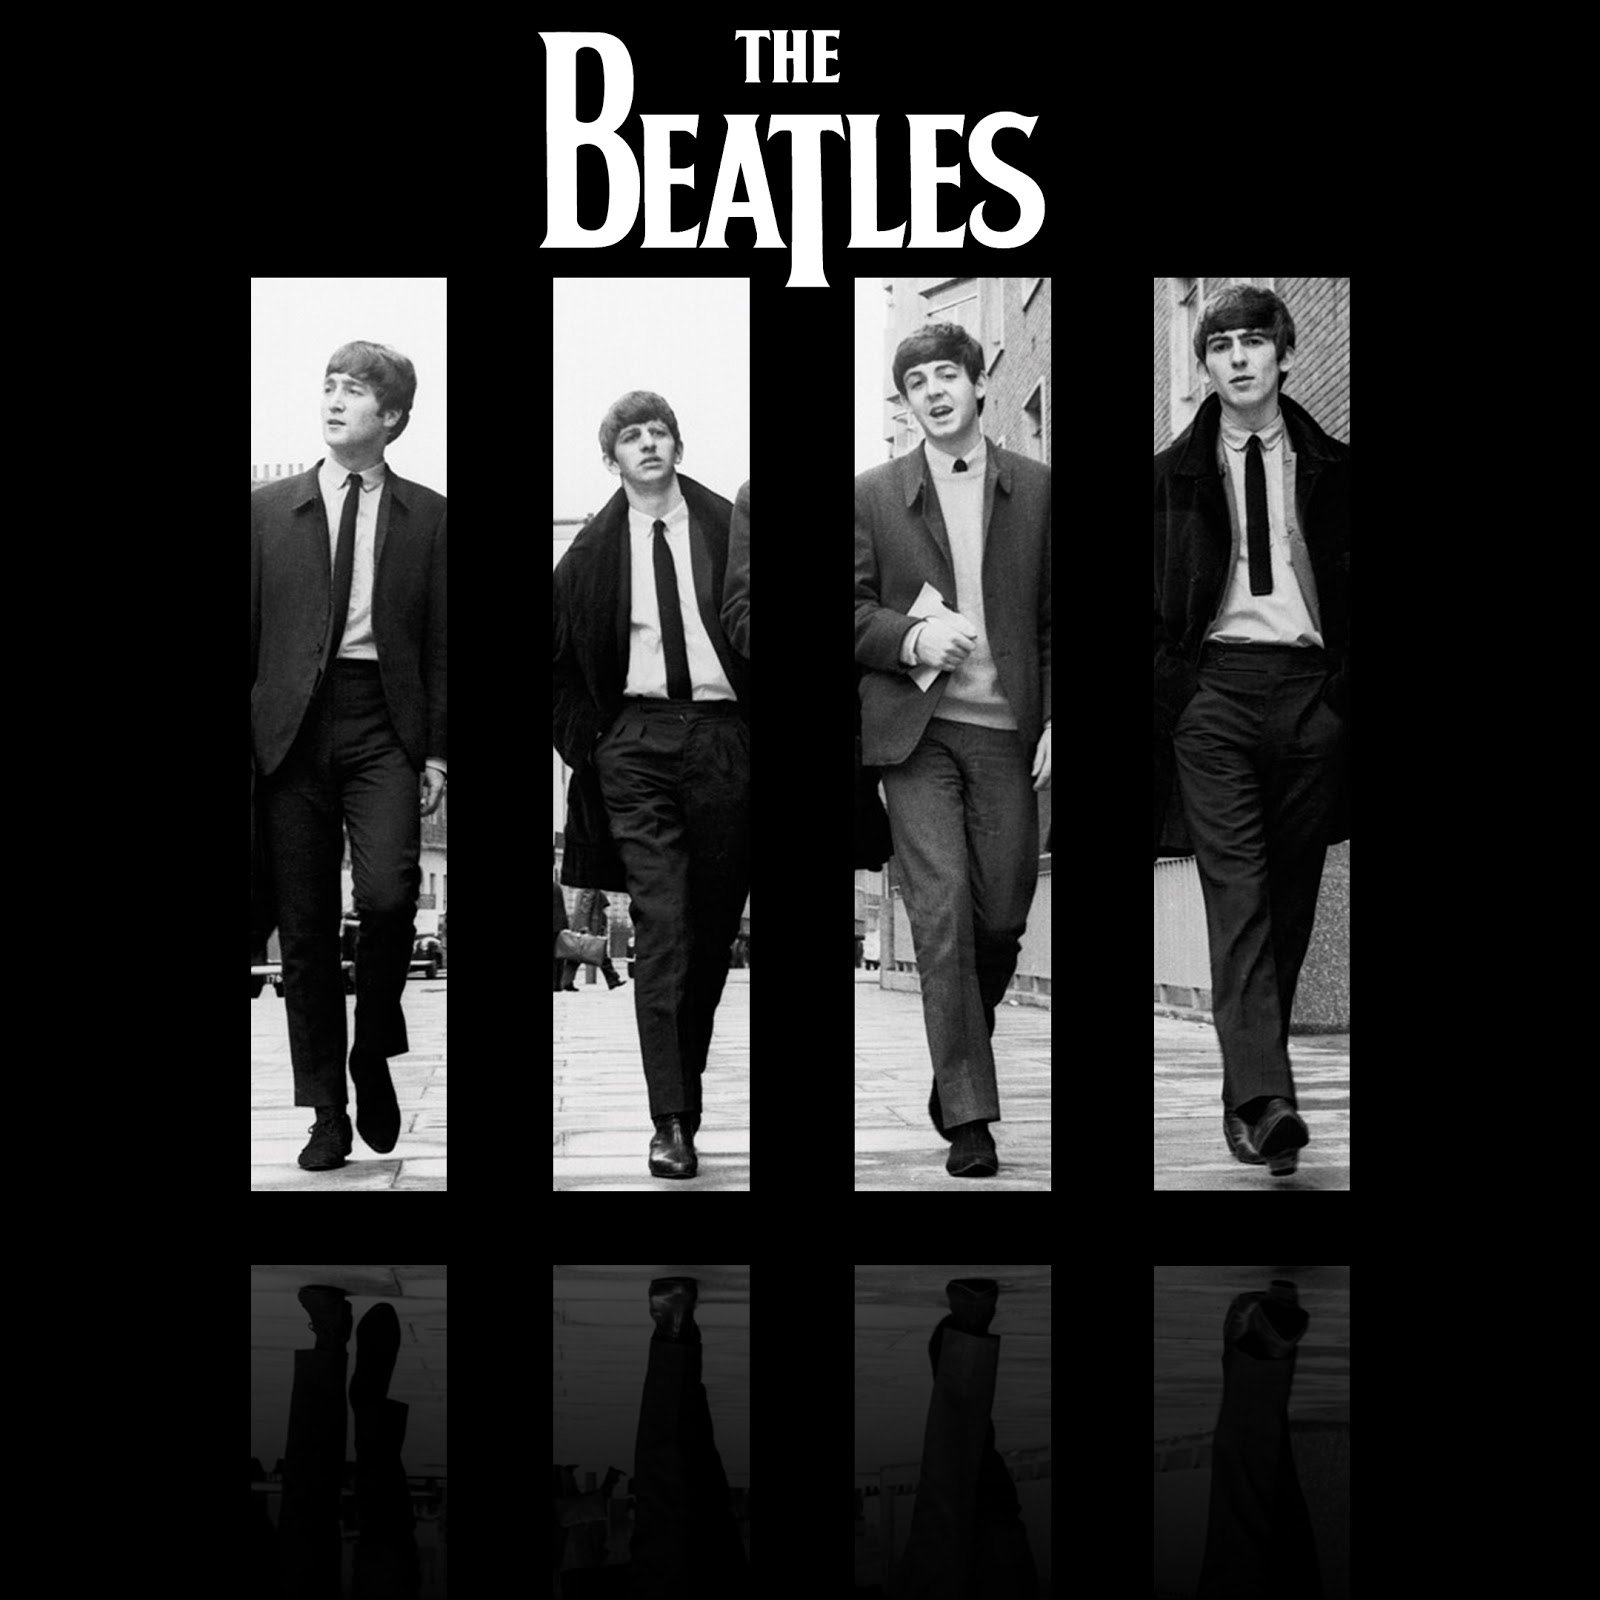 a history of the beatles in british rock music I'm older than most here, but heres a litle history rock & roll did not hit the east in full force until 1966 i graduated hs in 1955 and we were searching for music with more guitar, and more of soimething that was missing.